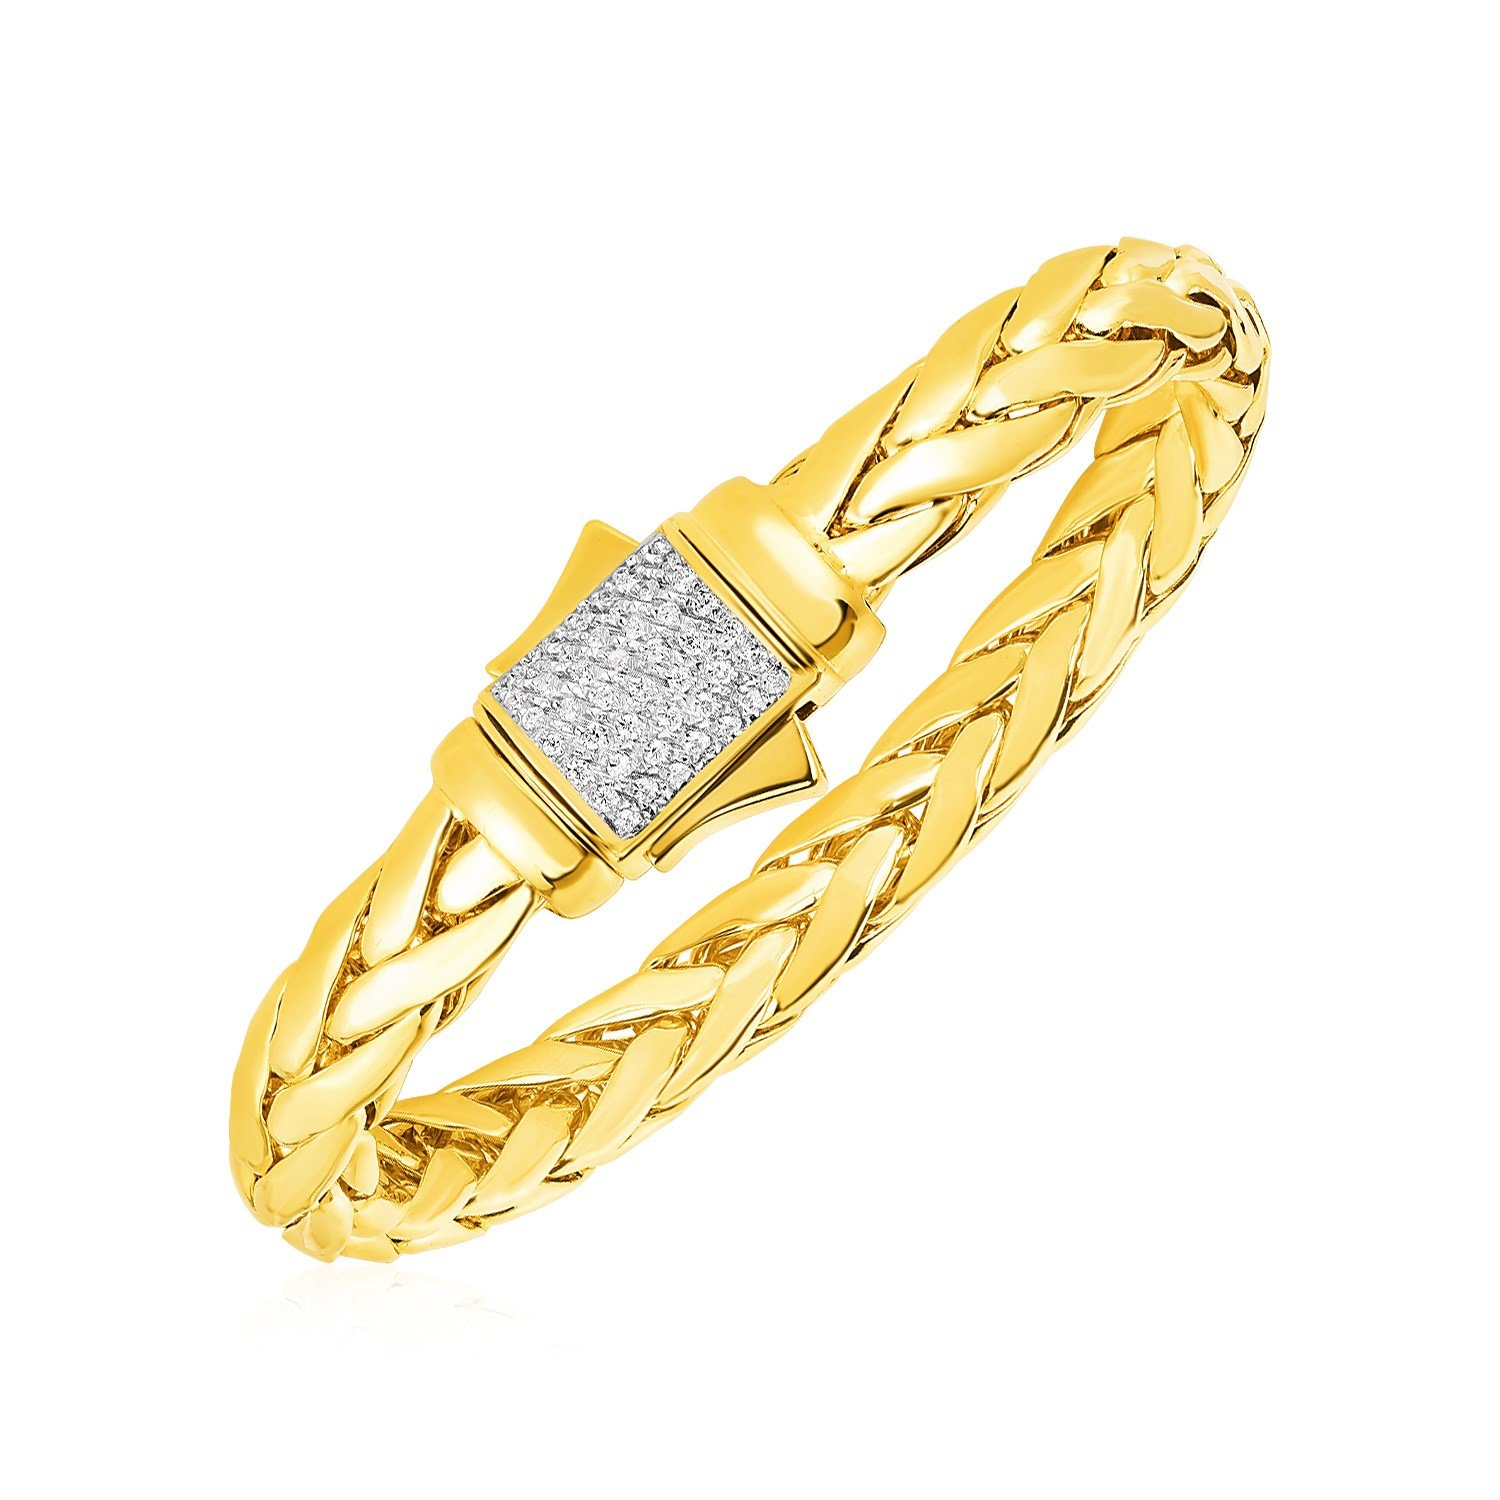 Woven rope bracelet with diamond accented clasp in k yellow gold